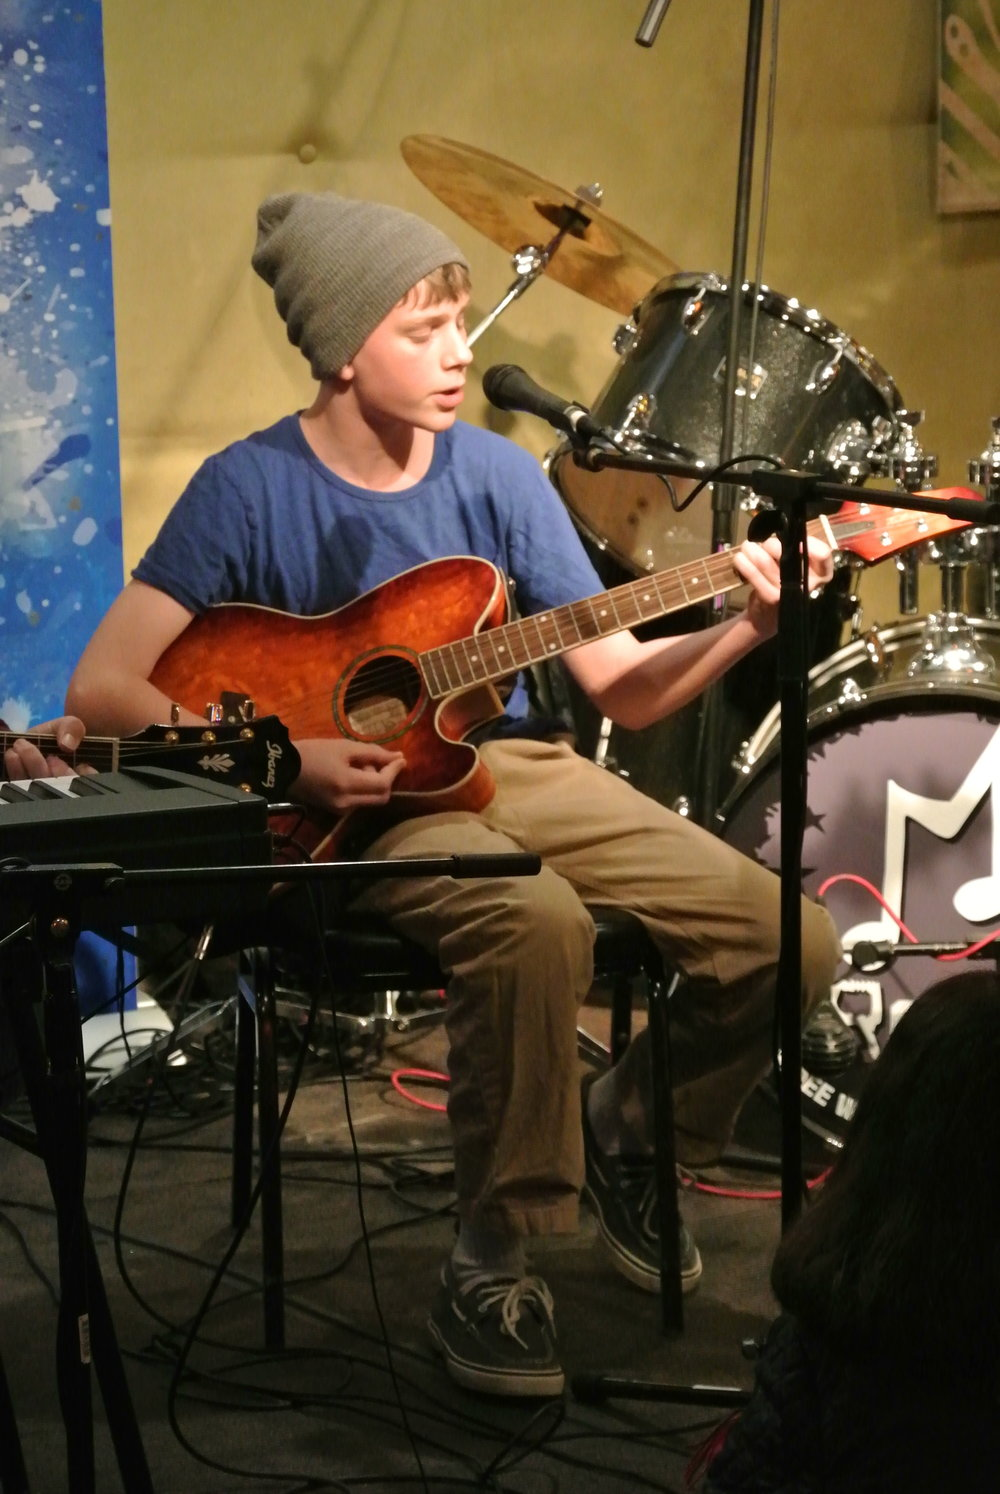 guitar bass drum lessons Lower Merion pa